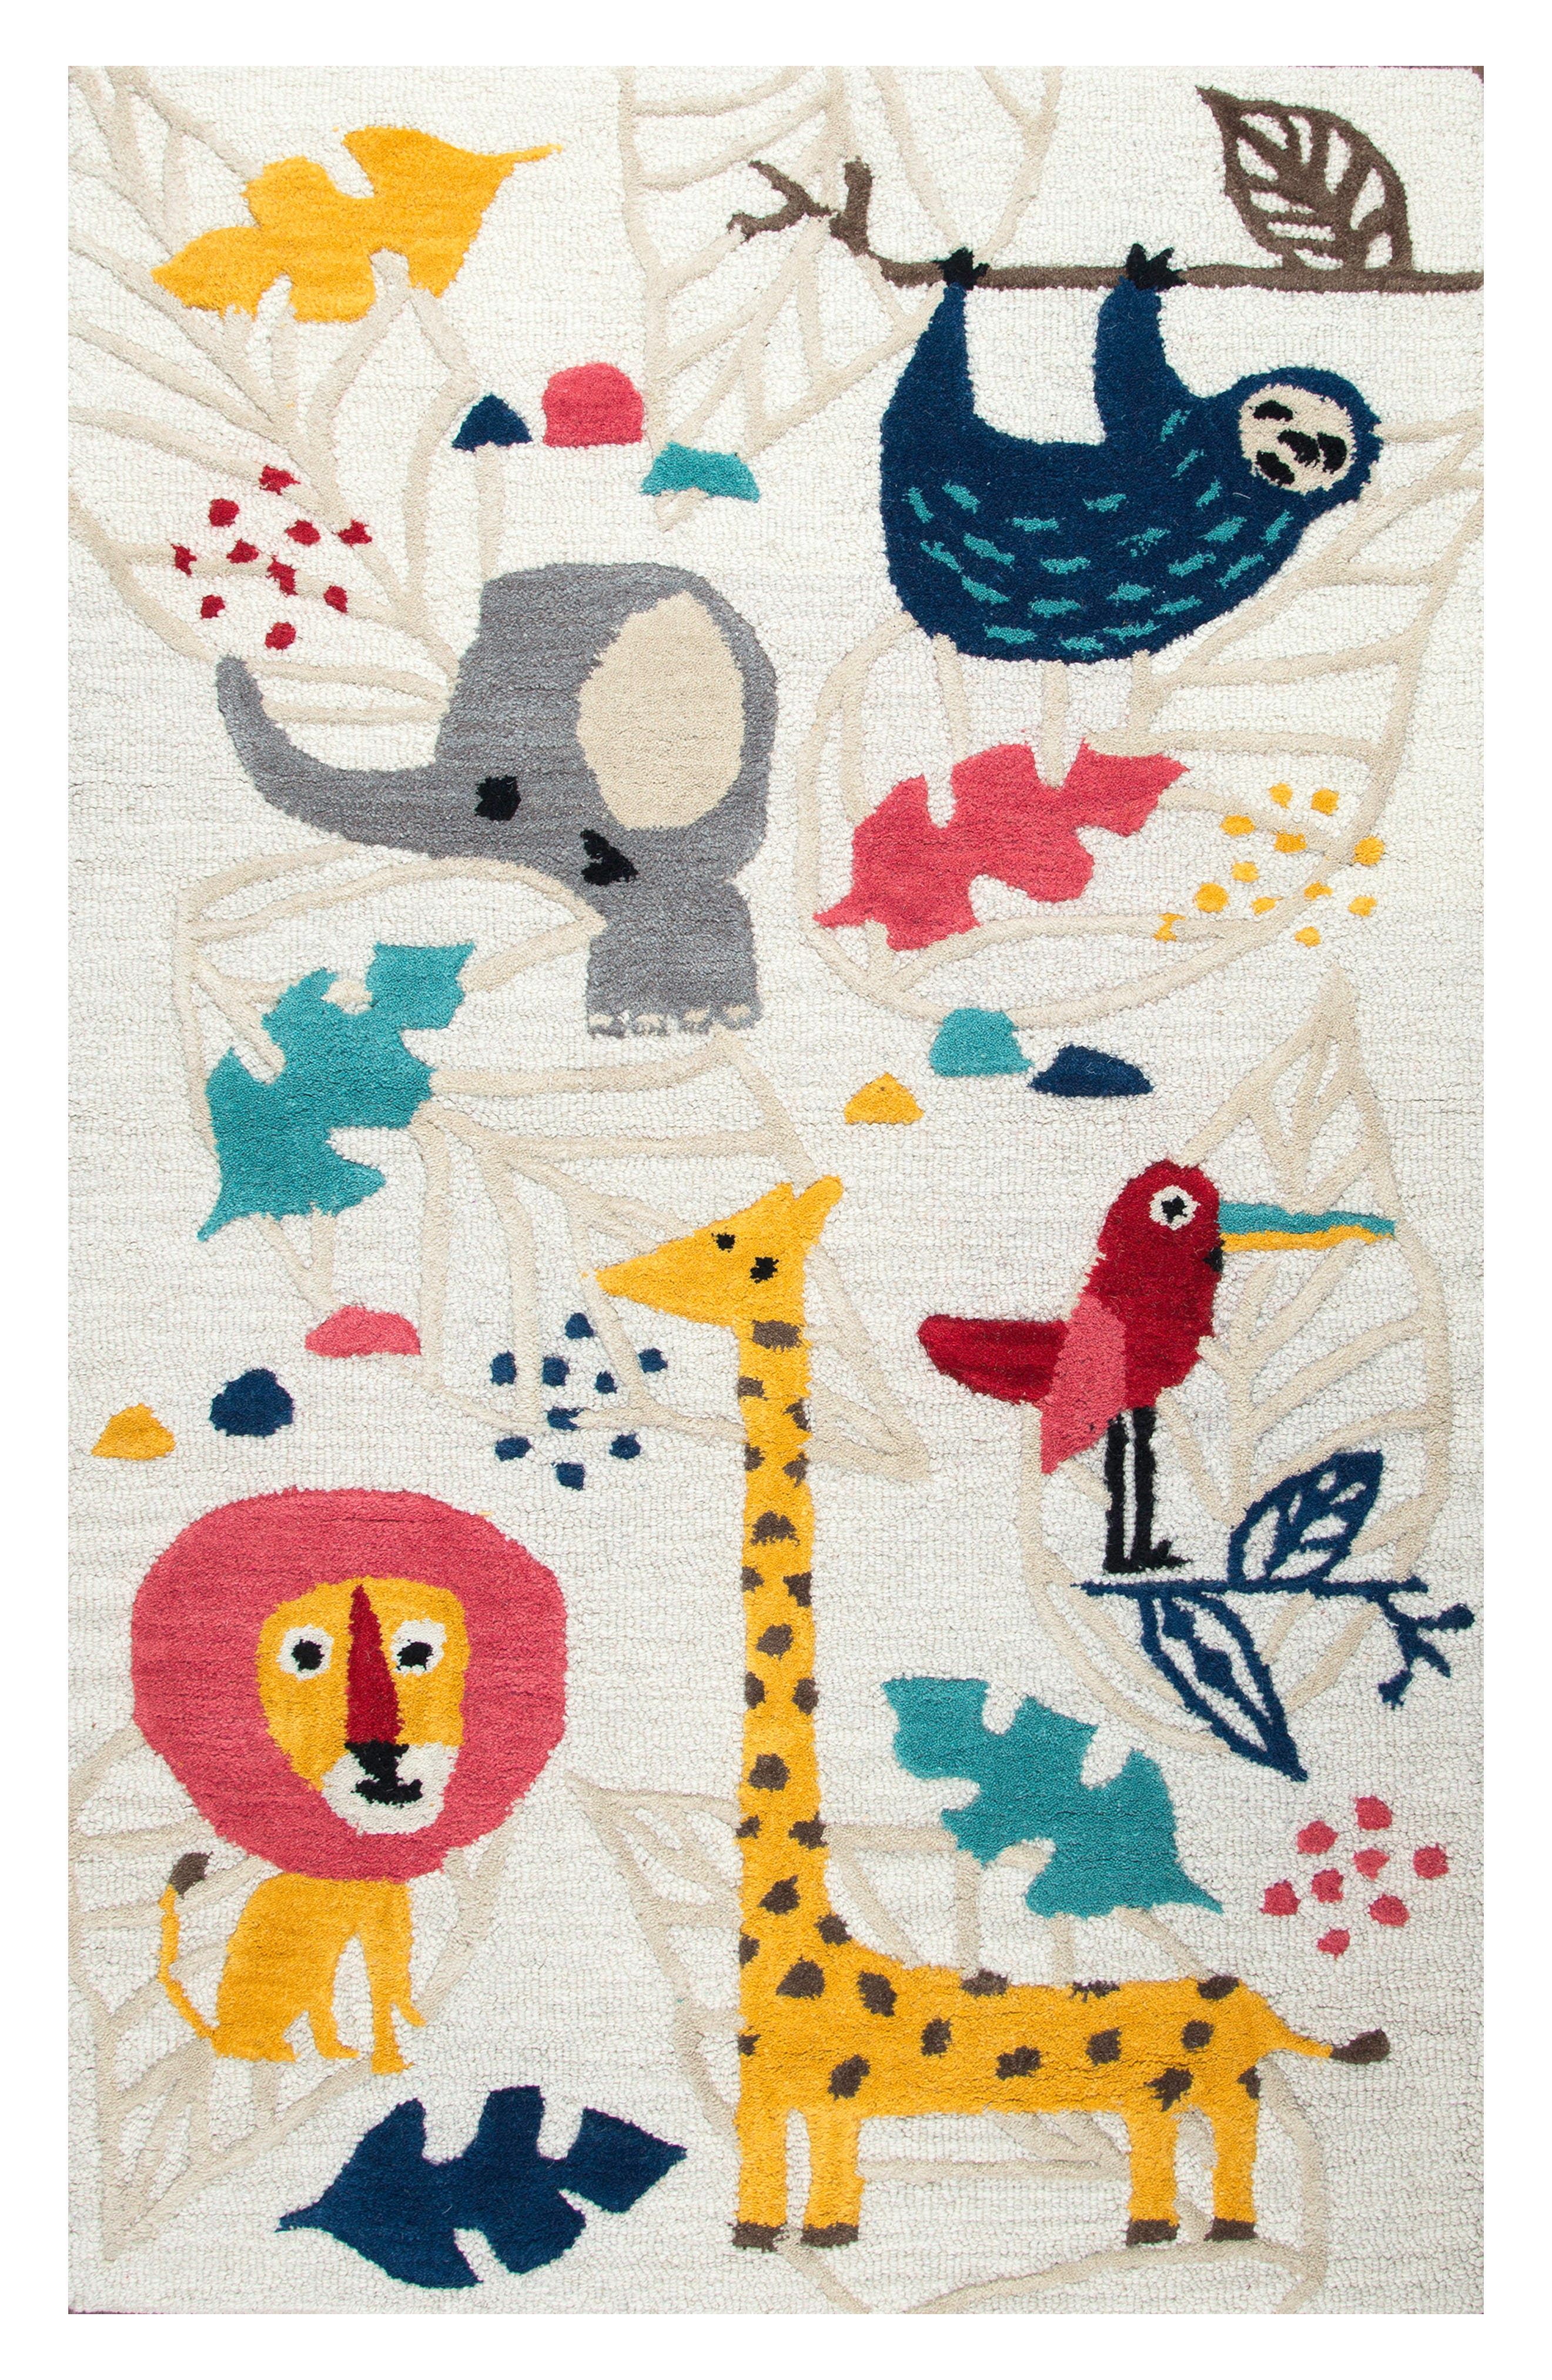 Play Day Zootime Rug,                             Main thumbnail 1, color,                             900